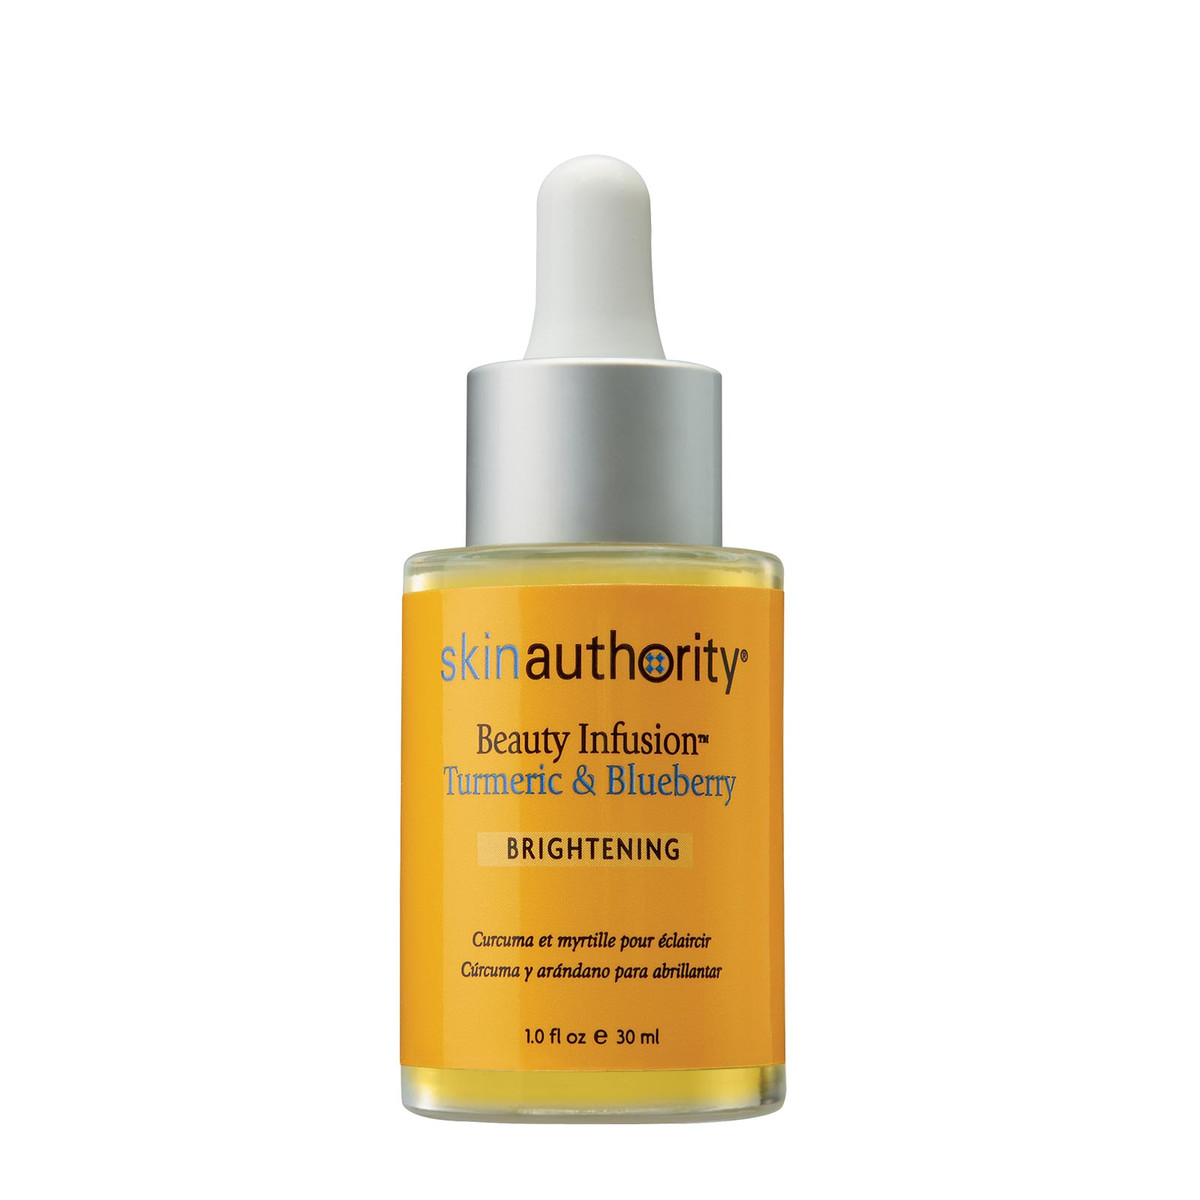 Skin Authority Beauty Infusion Turmeric & Blueberry for Brightening serum